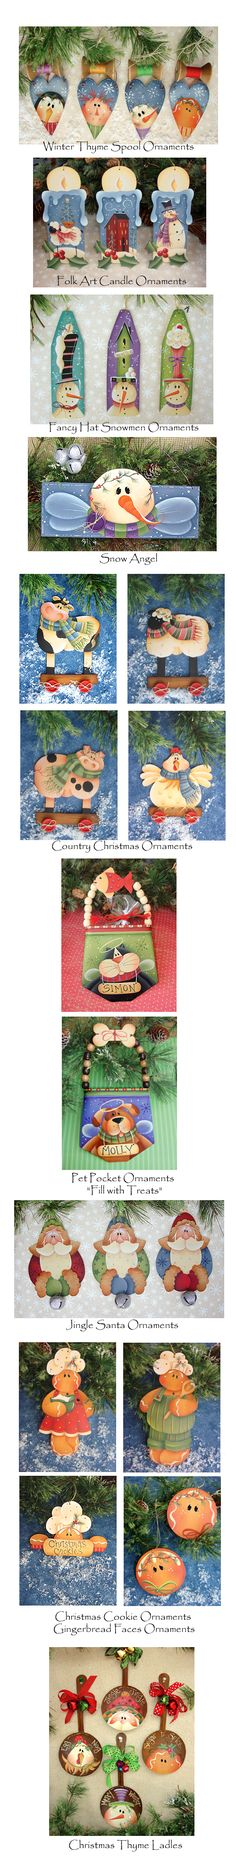 AWESOME HOLIDAY STUFF - SNOWMEN, ETC.  http://pinterest.com/slucy/3-holiday-season-love-patterns-ideas/